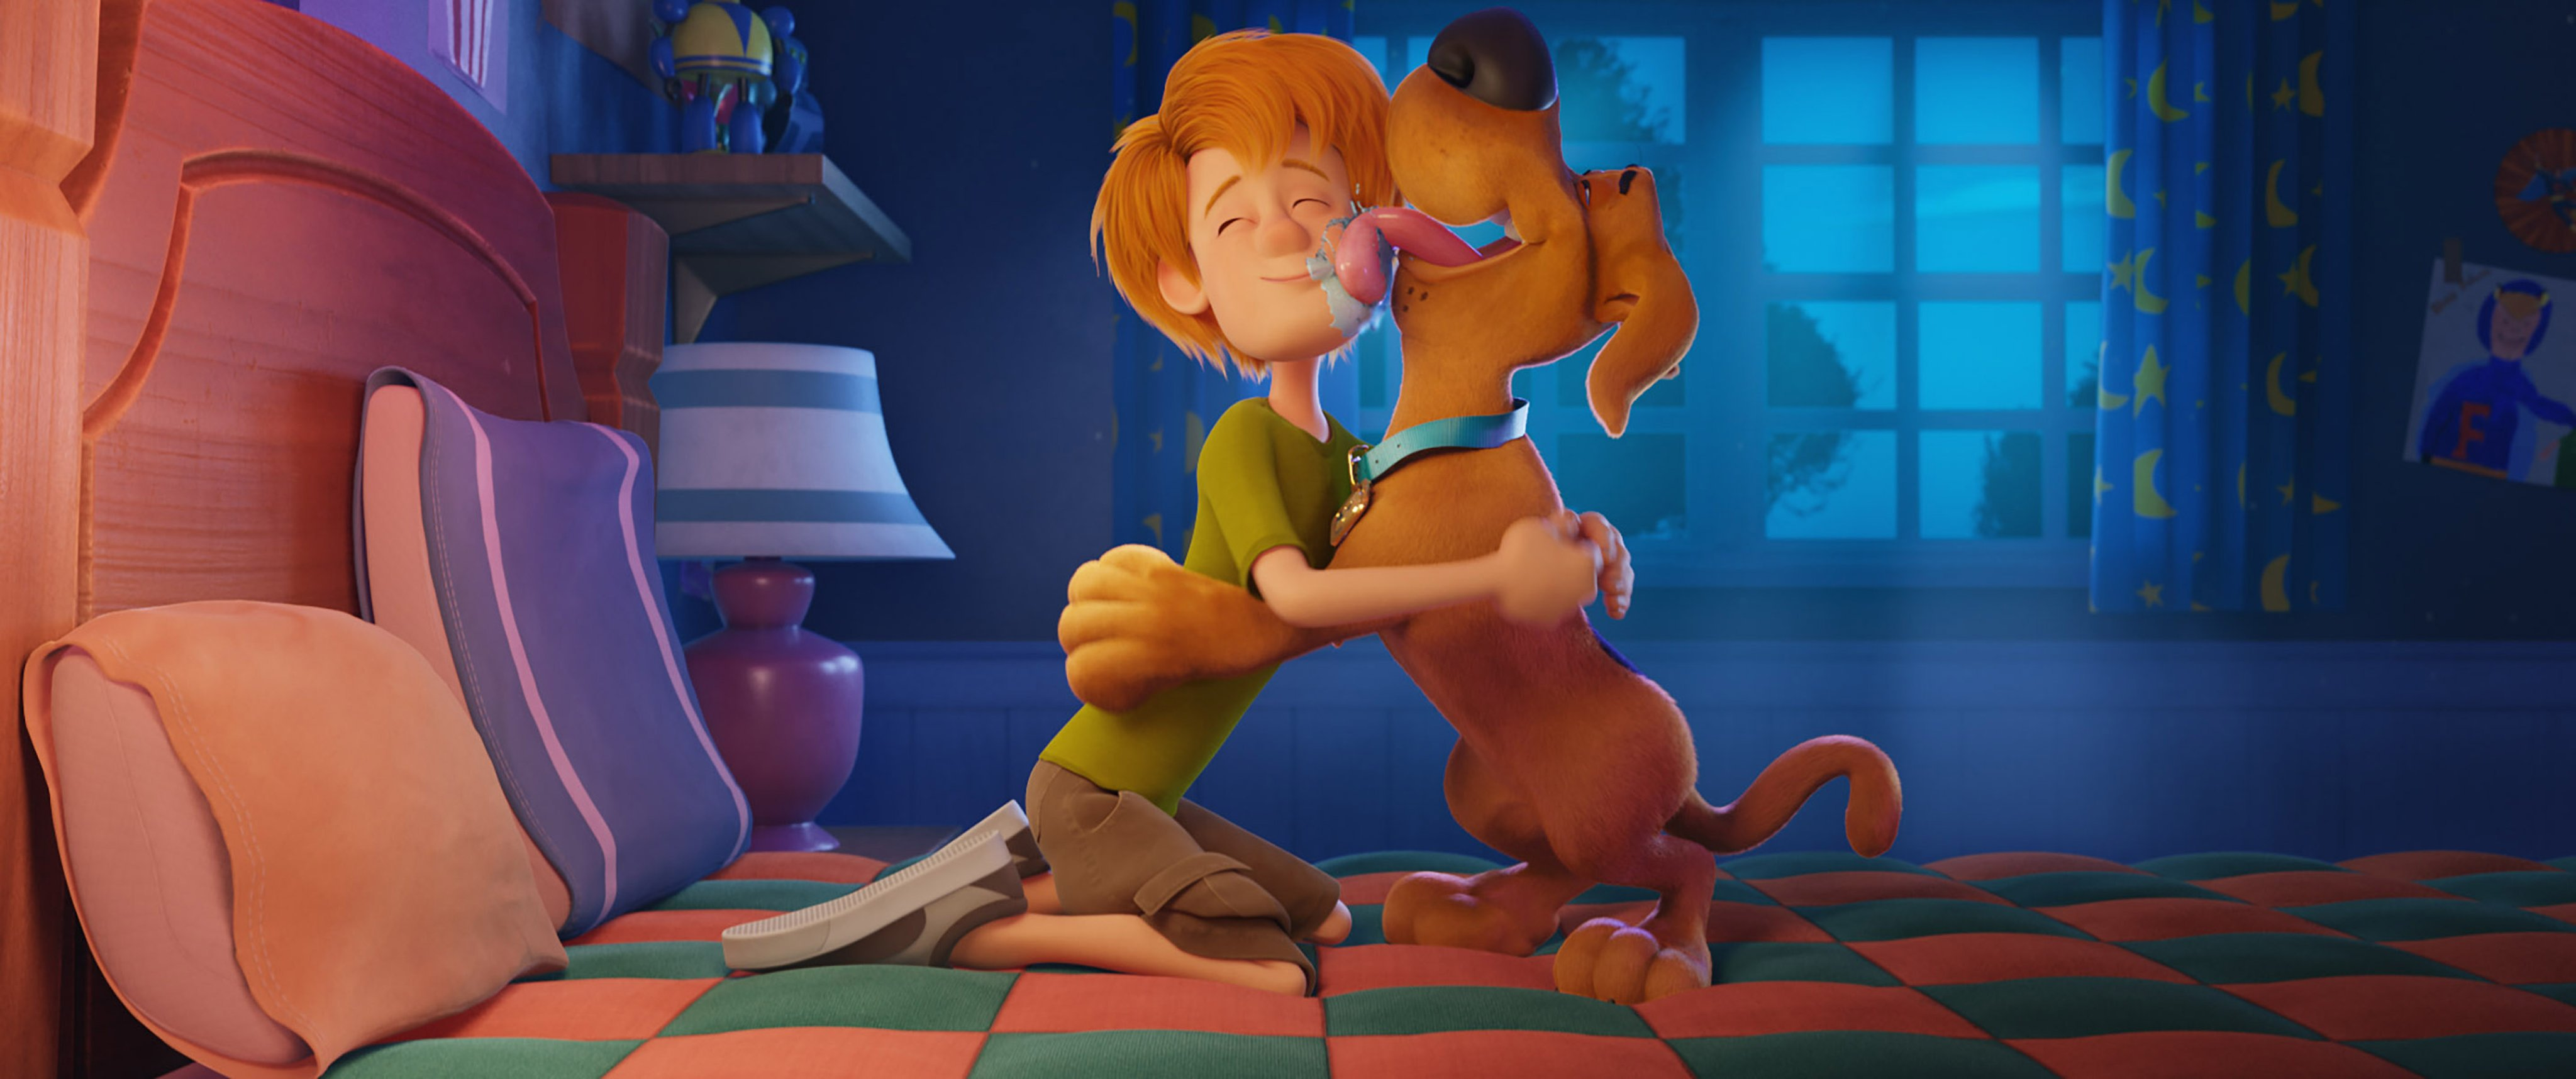 Scoob! First Look